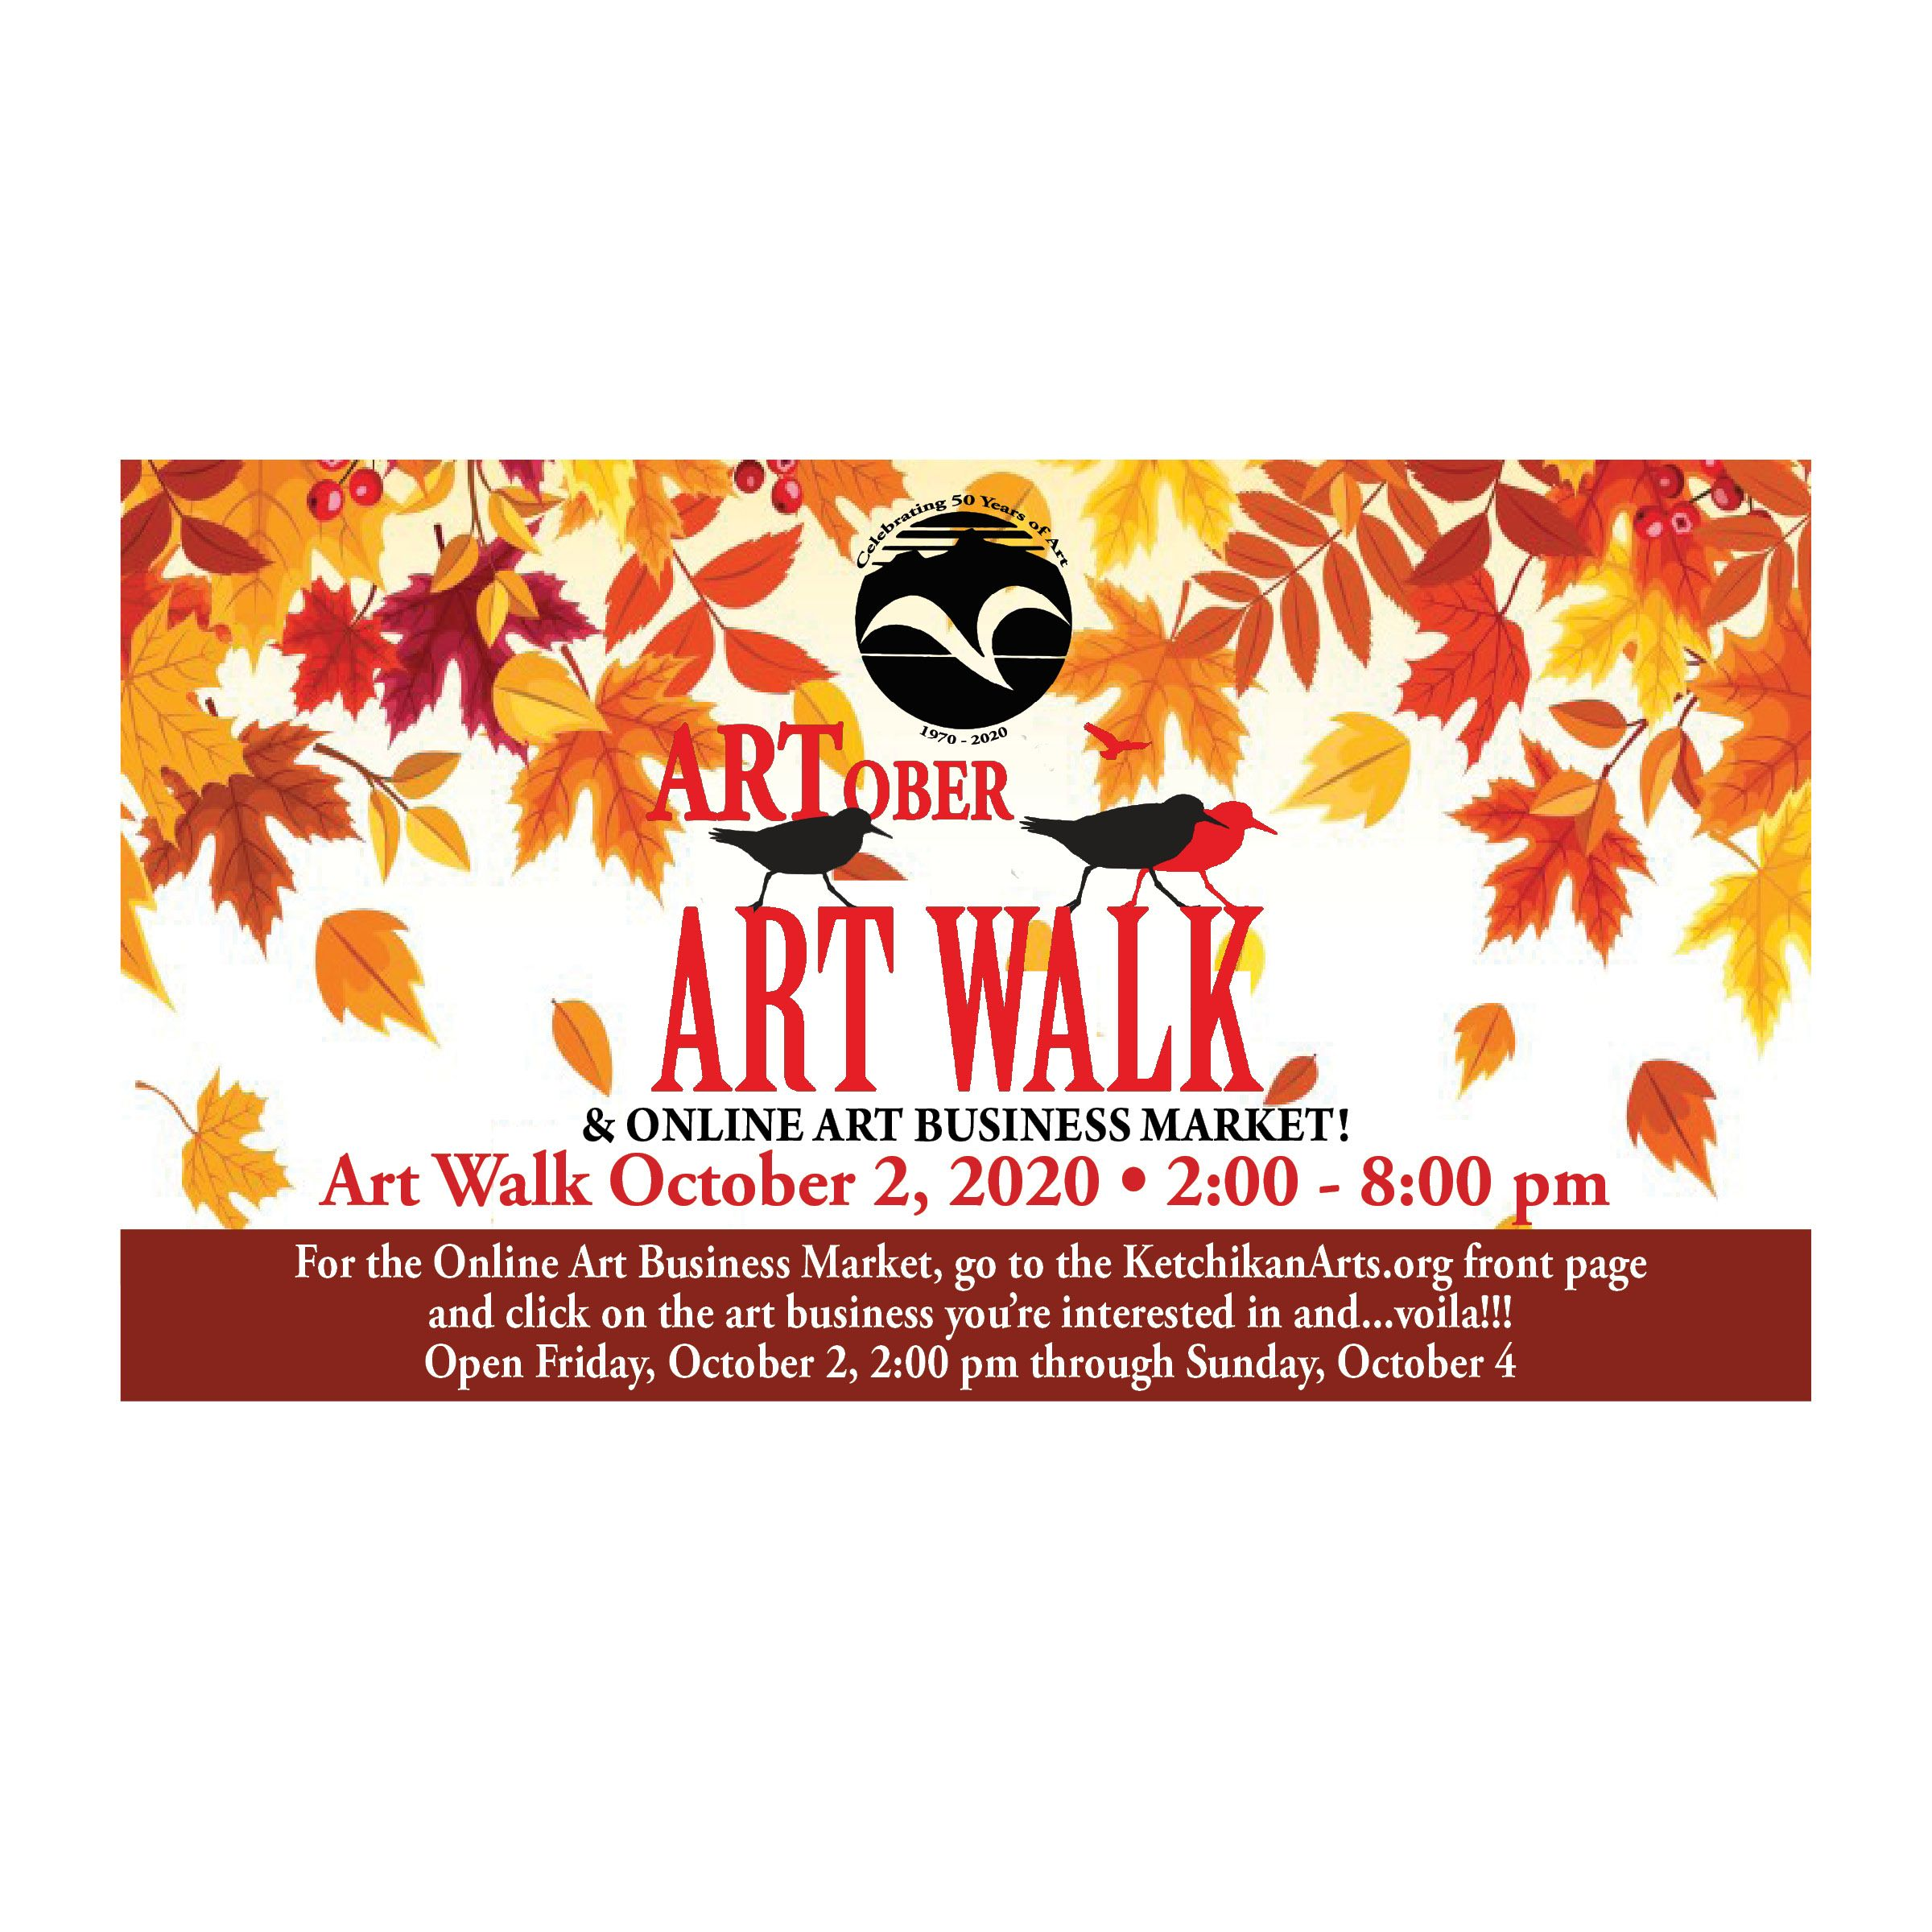 ARTober Art Walk and Online Art Business Market!